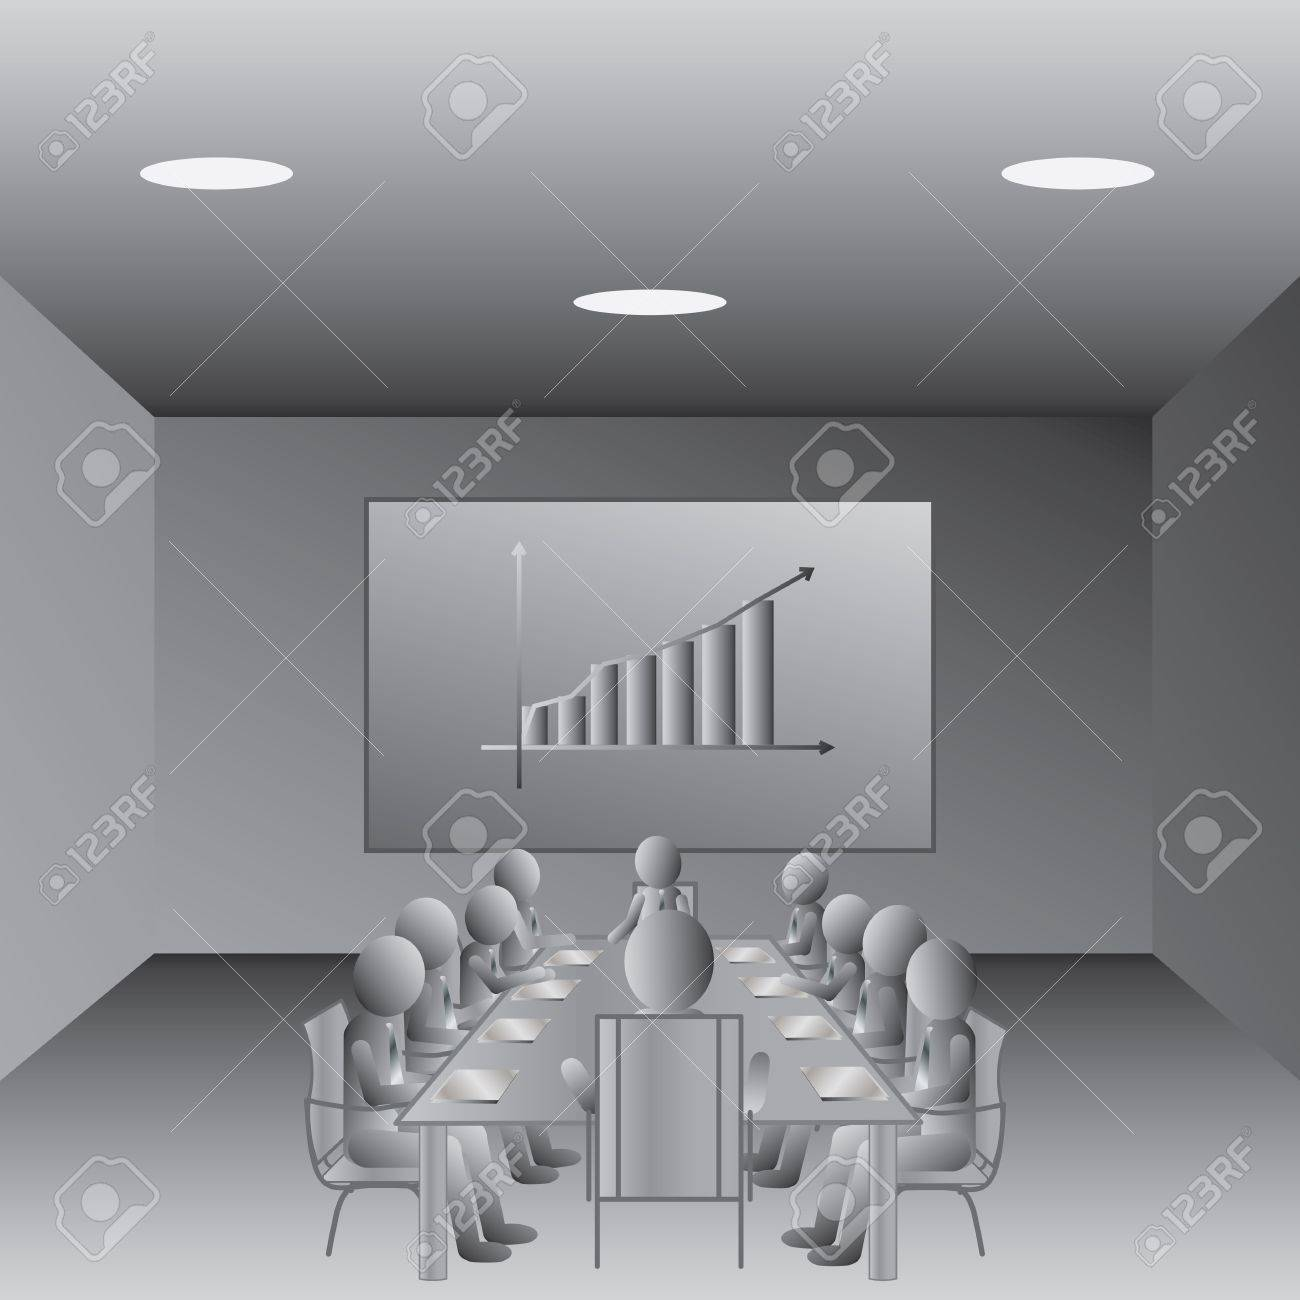 illustration of business people meeting in a conference room - 13774680